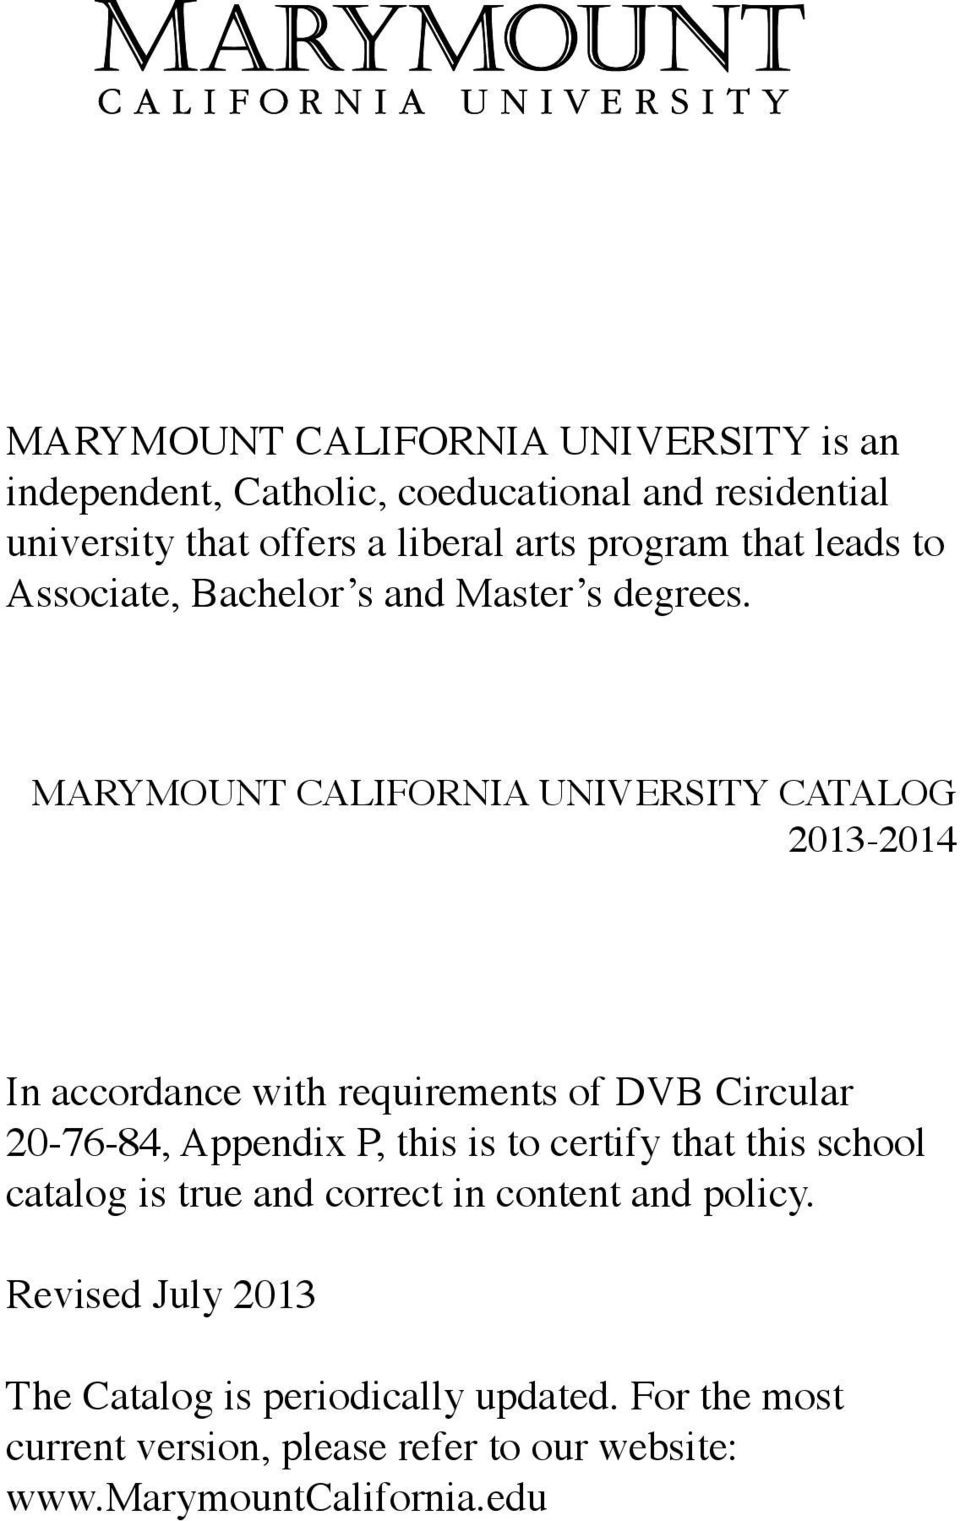 MaryMount CaLIFornIa university CataLog 2013-2014 In accordance with requirements of DVB Circular 20-76-84, appendix P, this is to